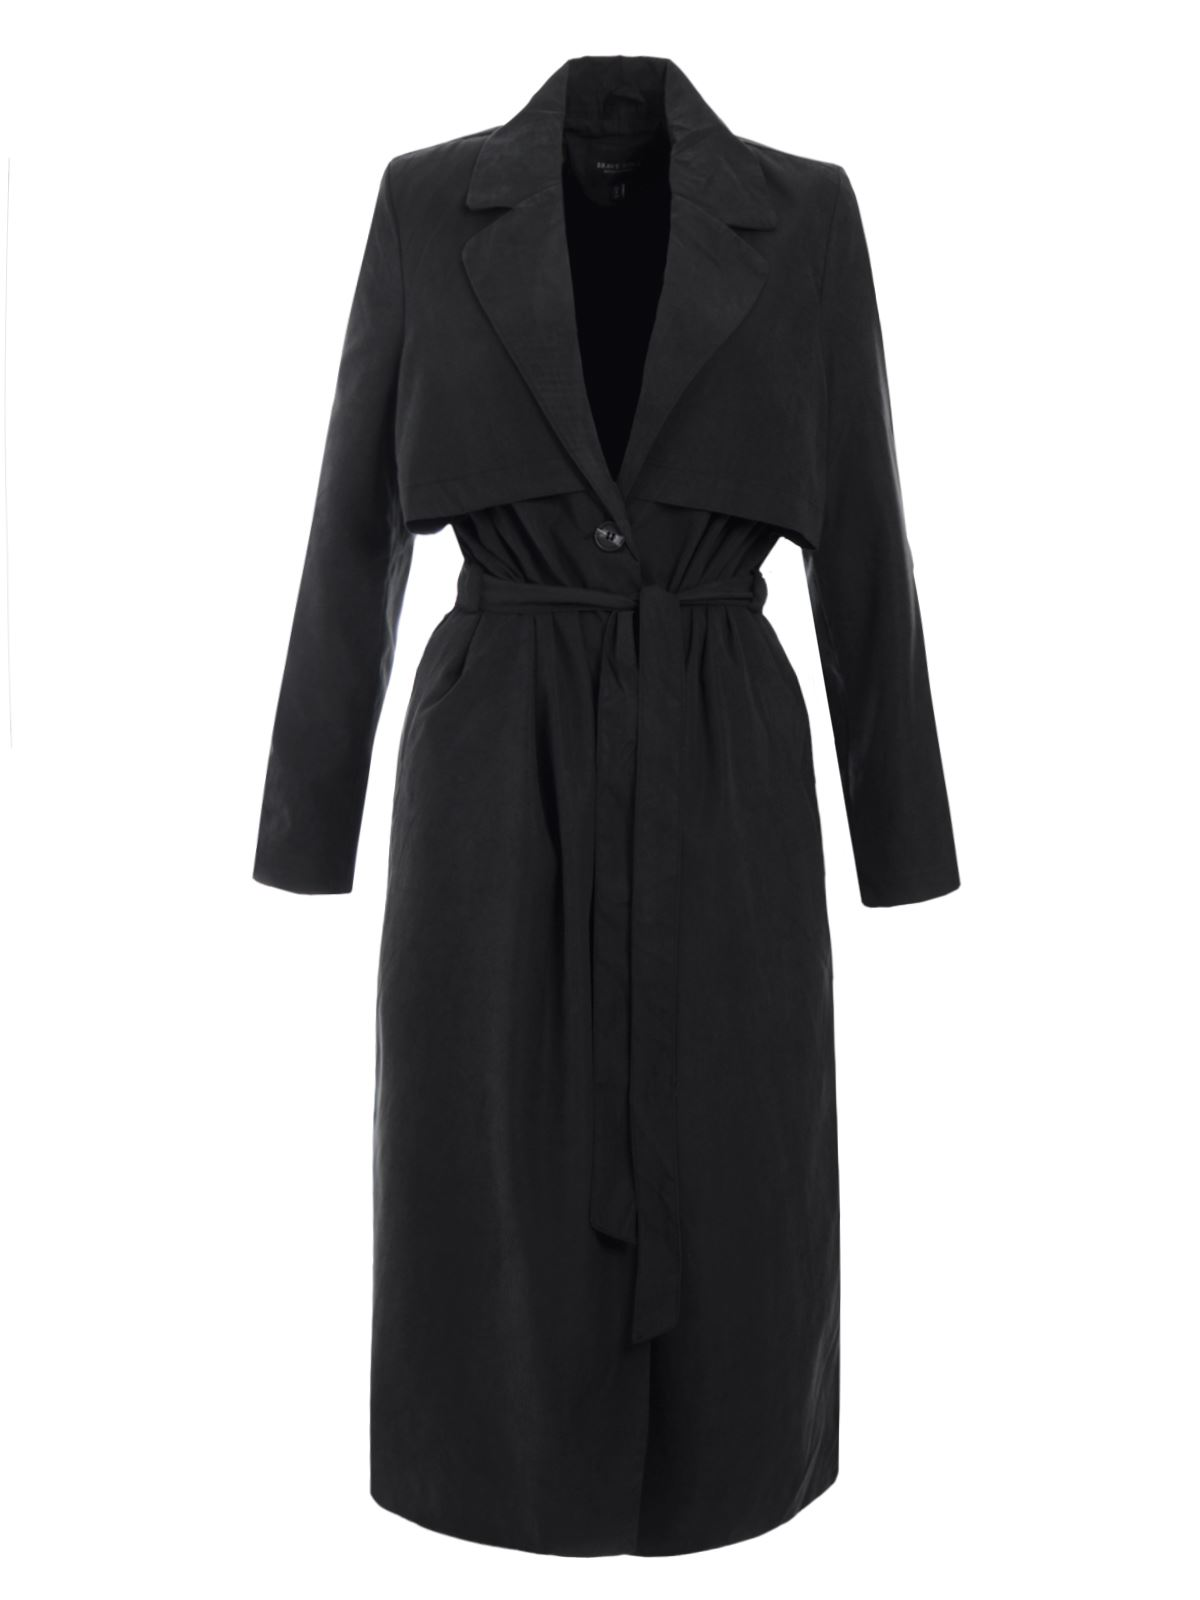 womens ladies oversized moss microfibre maxi length duster coat belted jacket ebay. Black Bedroom Furniture Sets. Home Design Ideas